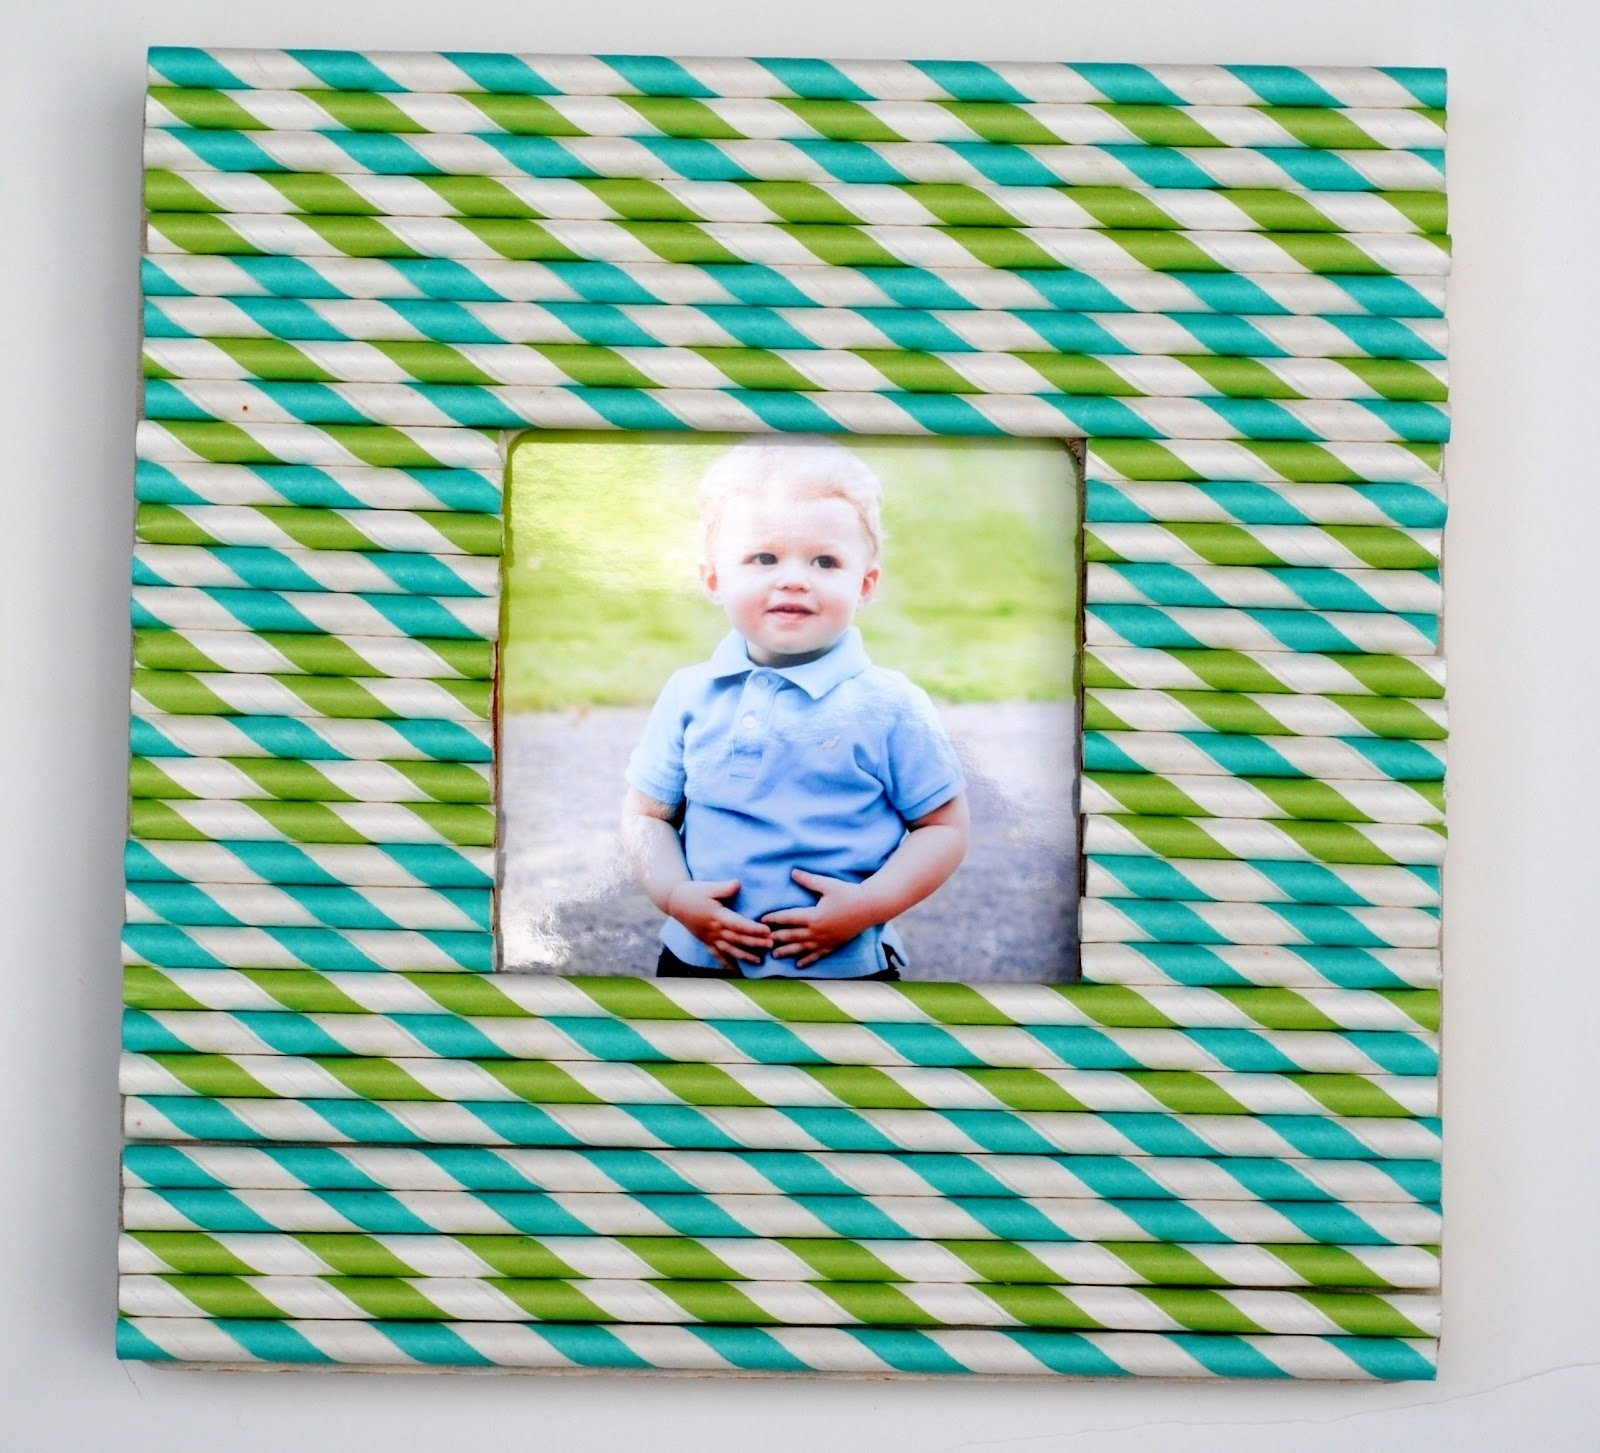 10 Famous Craft Ideas For Picture Frames 5 ways to decorate a craft frame kids craft ideas making lemonade 2020